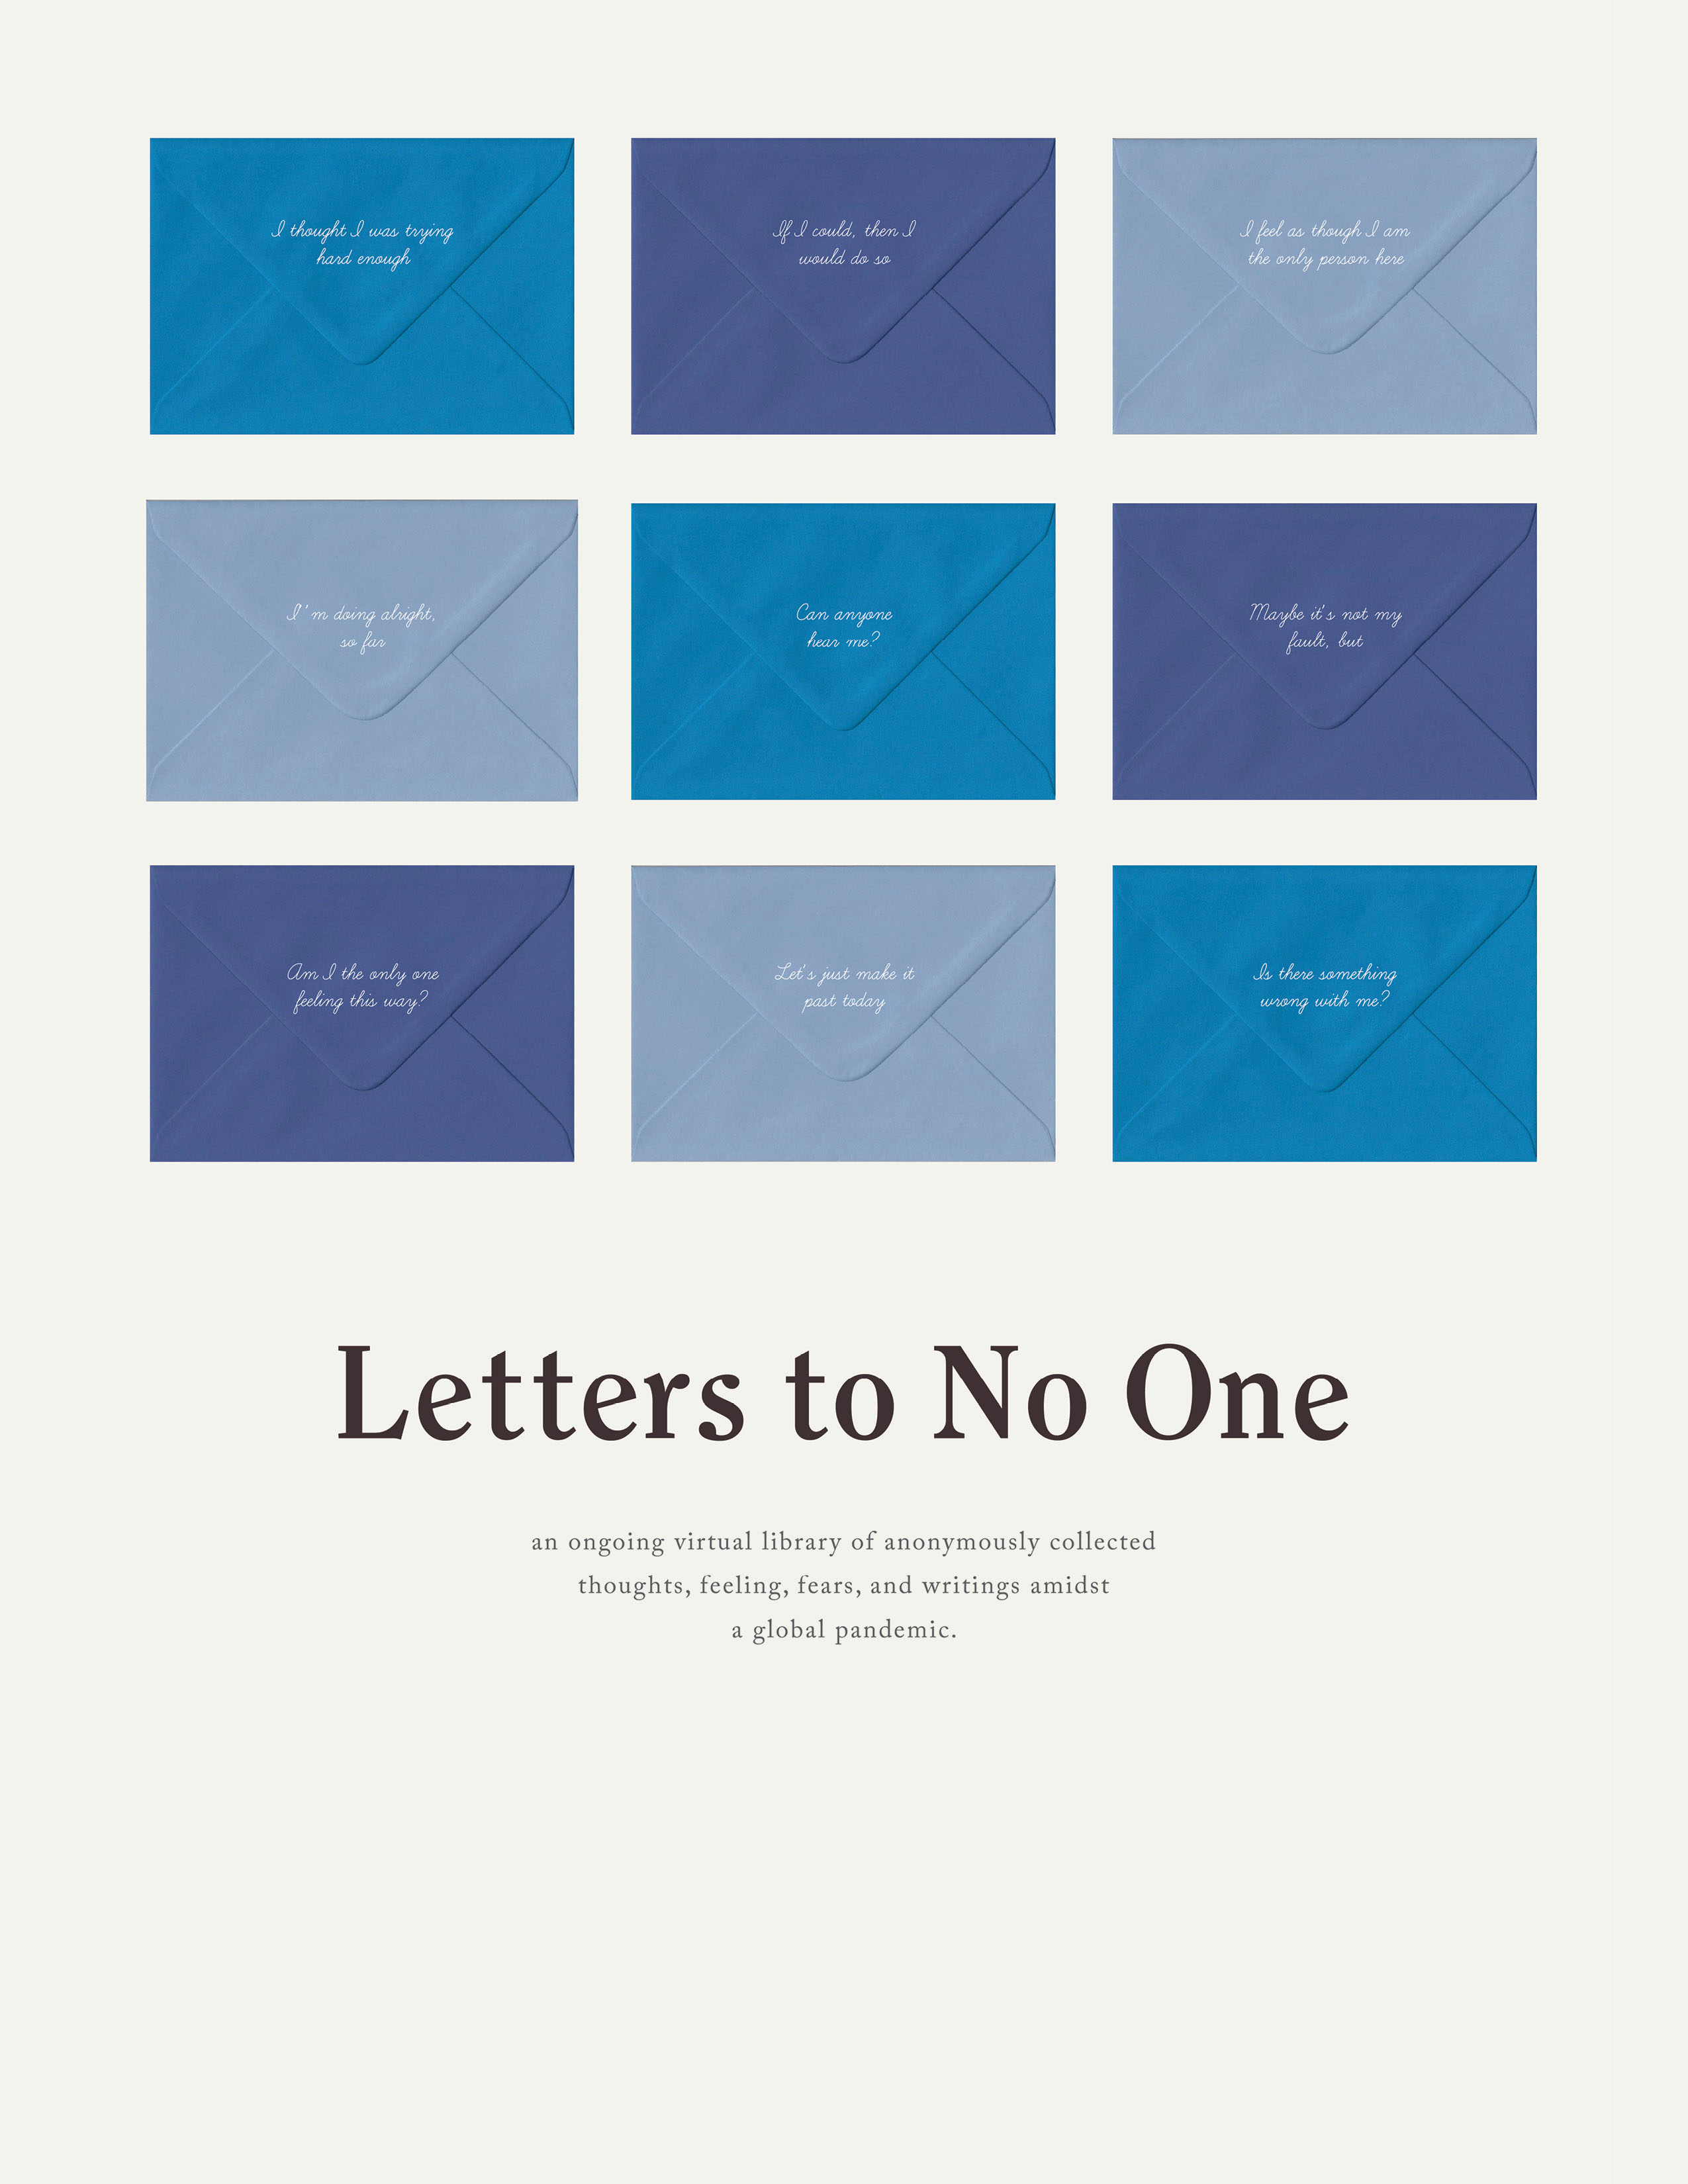 Letters to No One: An ongoing virtual library of anonymously collected thoughts, feeling, fears, and writings amidst a global pandemic. An image of 3 rows of 3 coloured envelopes with text at the back of them: I thought I was trying hard enough. IF I could, then I would do so. I feel as though I am the only person here. I'm doing alright, so far. Can anyone hear me? Maybe it's not my fault, but. Am I the only one feeling this way? Let's just make it past today. Is there something wrong with me?